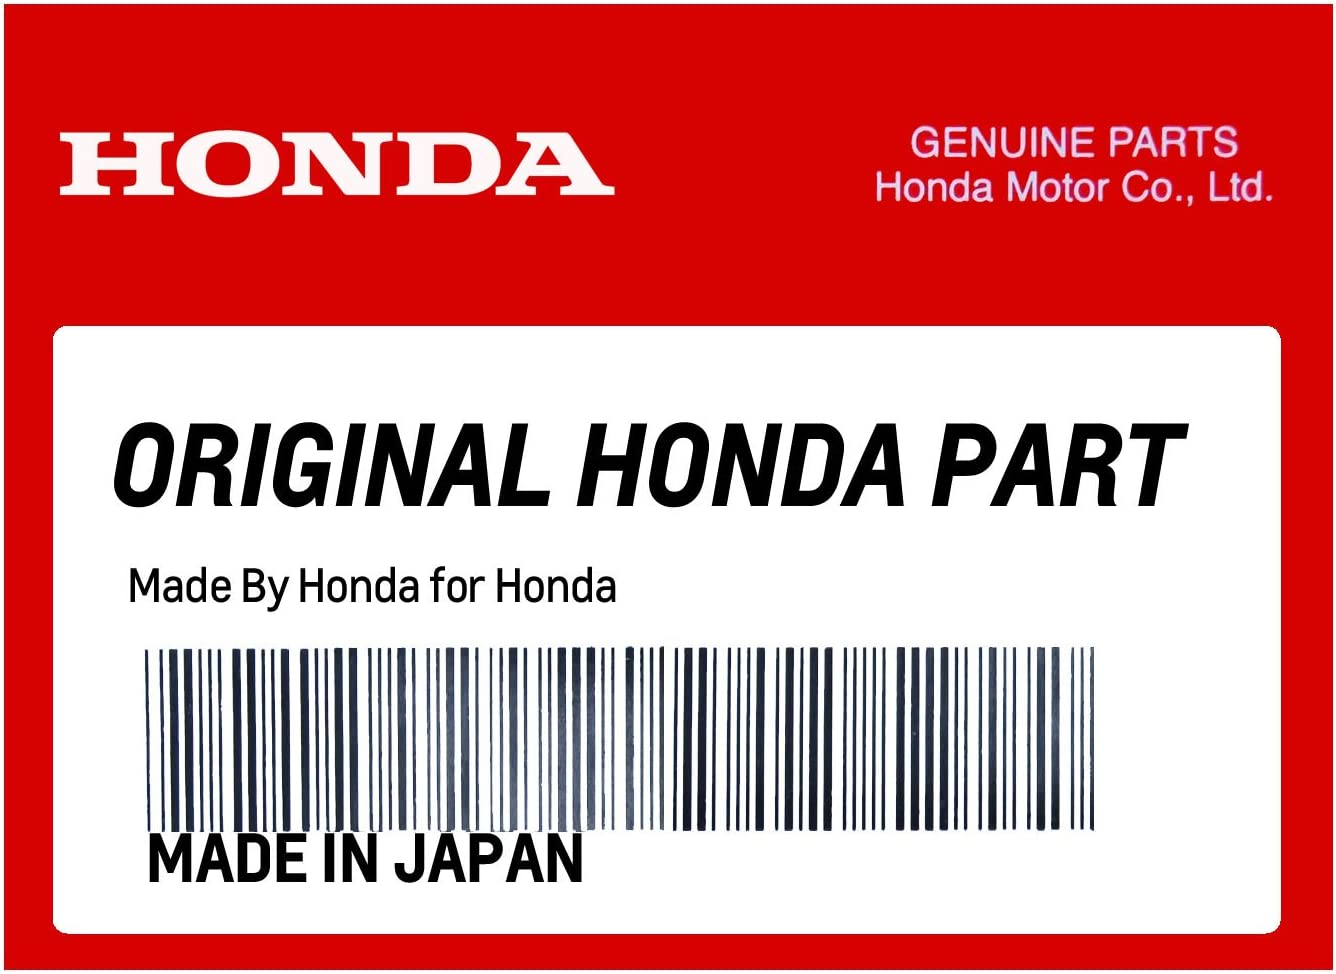 Honda 17631-VM6-300 Gasket; New # 17631-899-000 Made by Honda